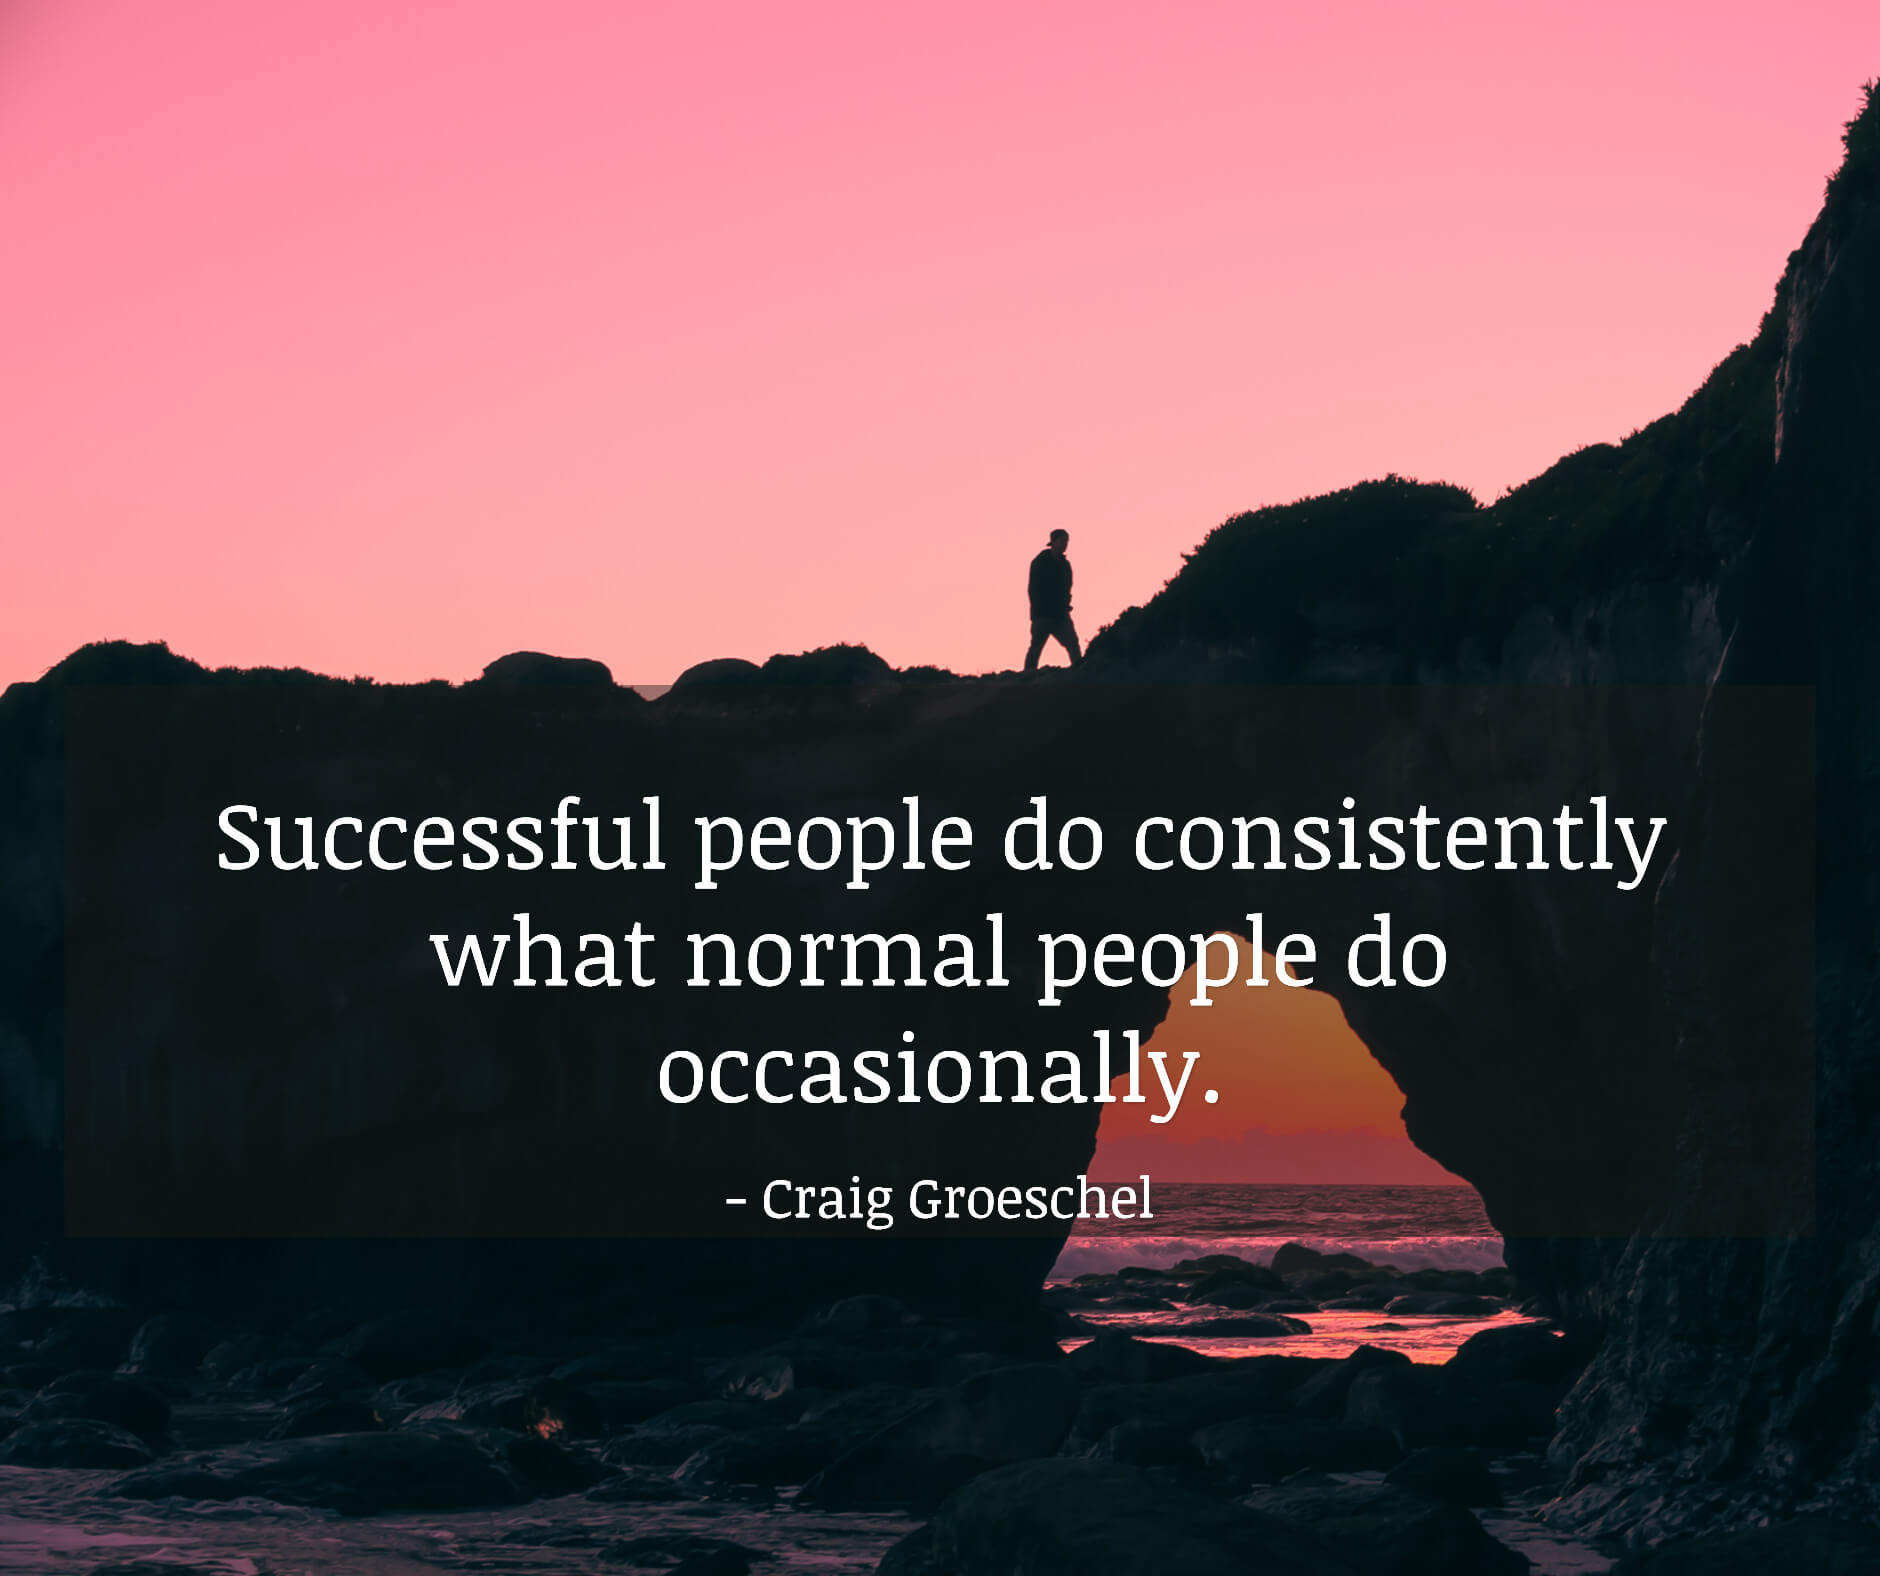 Successful people do consistently what normal people do occasionally.